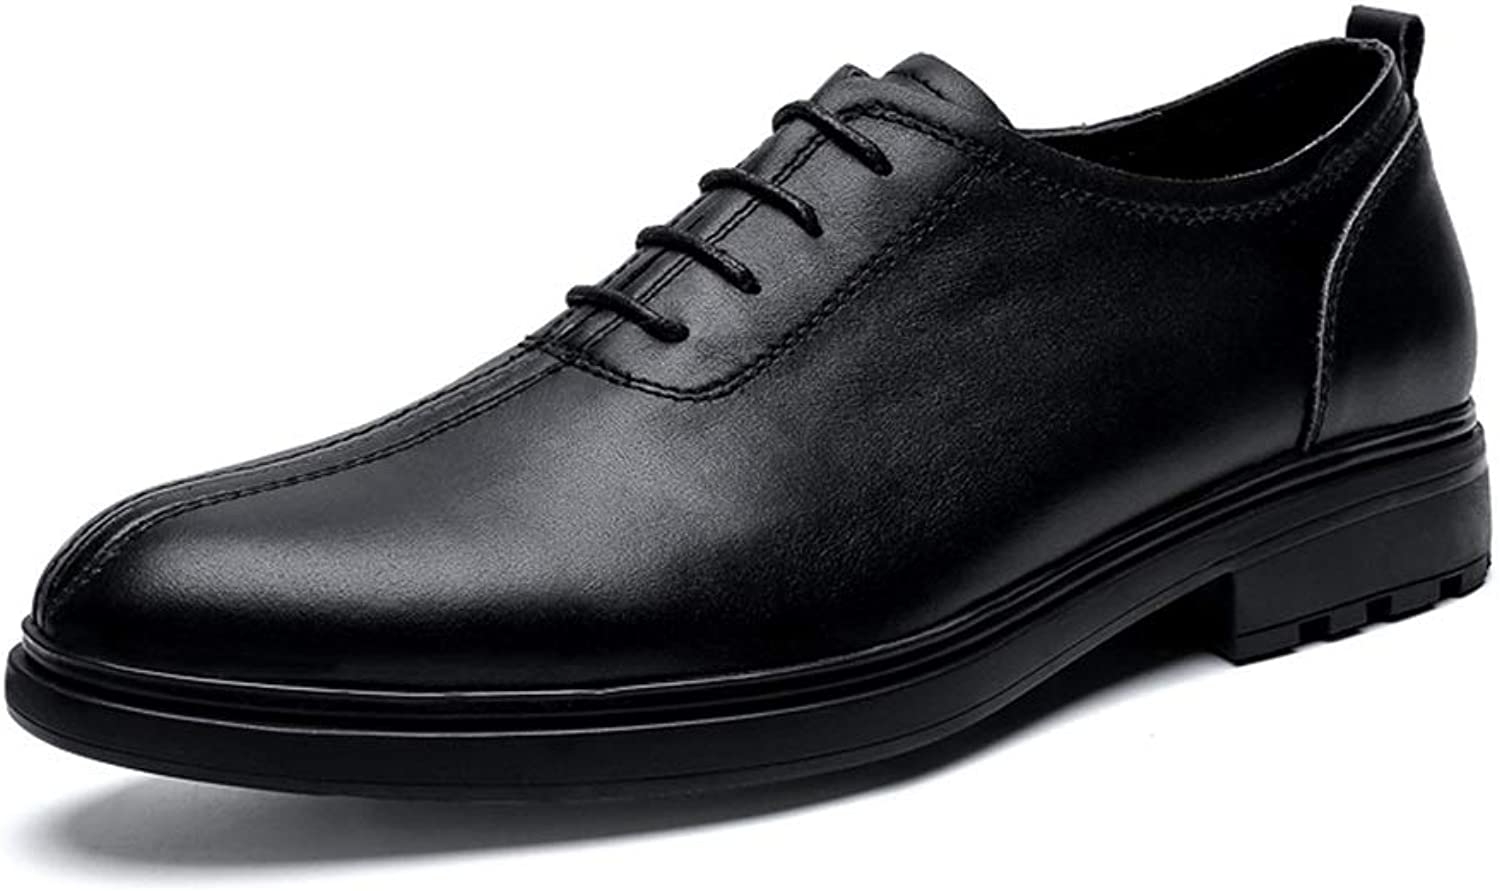 Formal shoes for Men Lace Up Style Oxford shoes OX Leather Round Toe Classic Casual British Style (color   Black, Size   11 D(M) US)